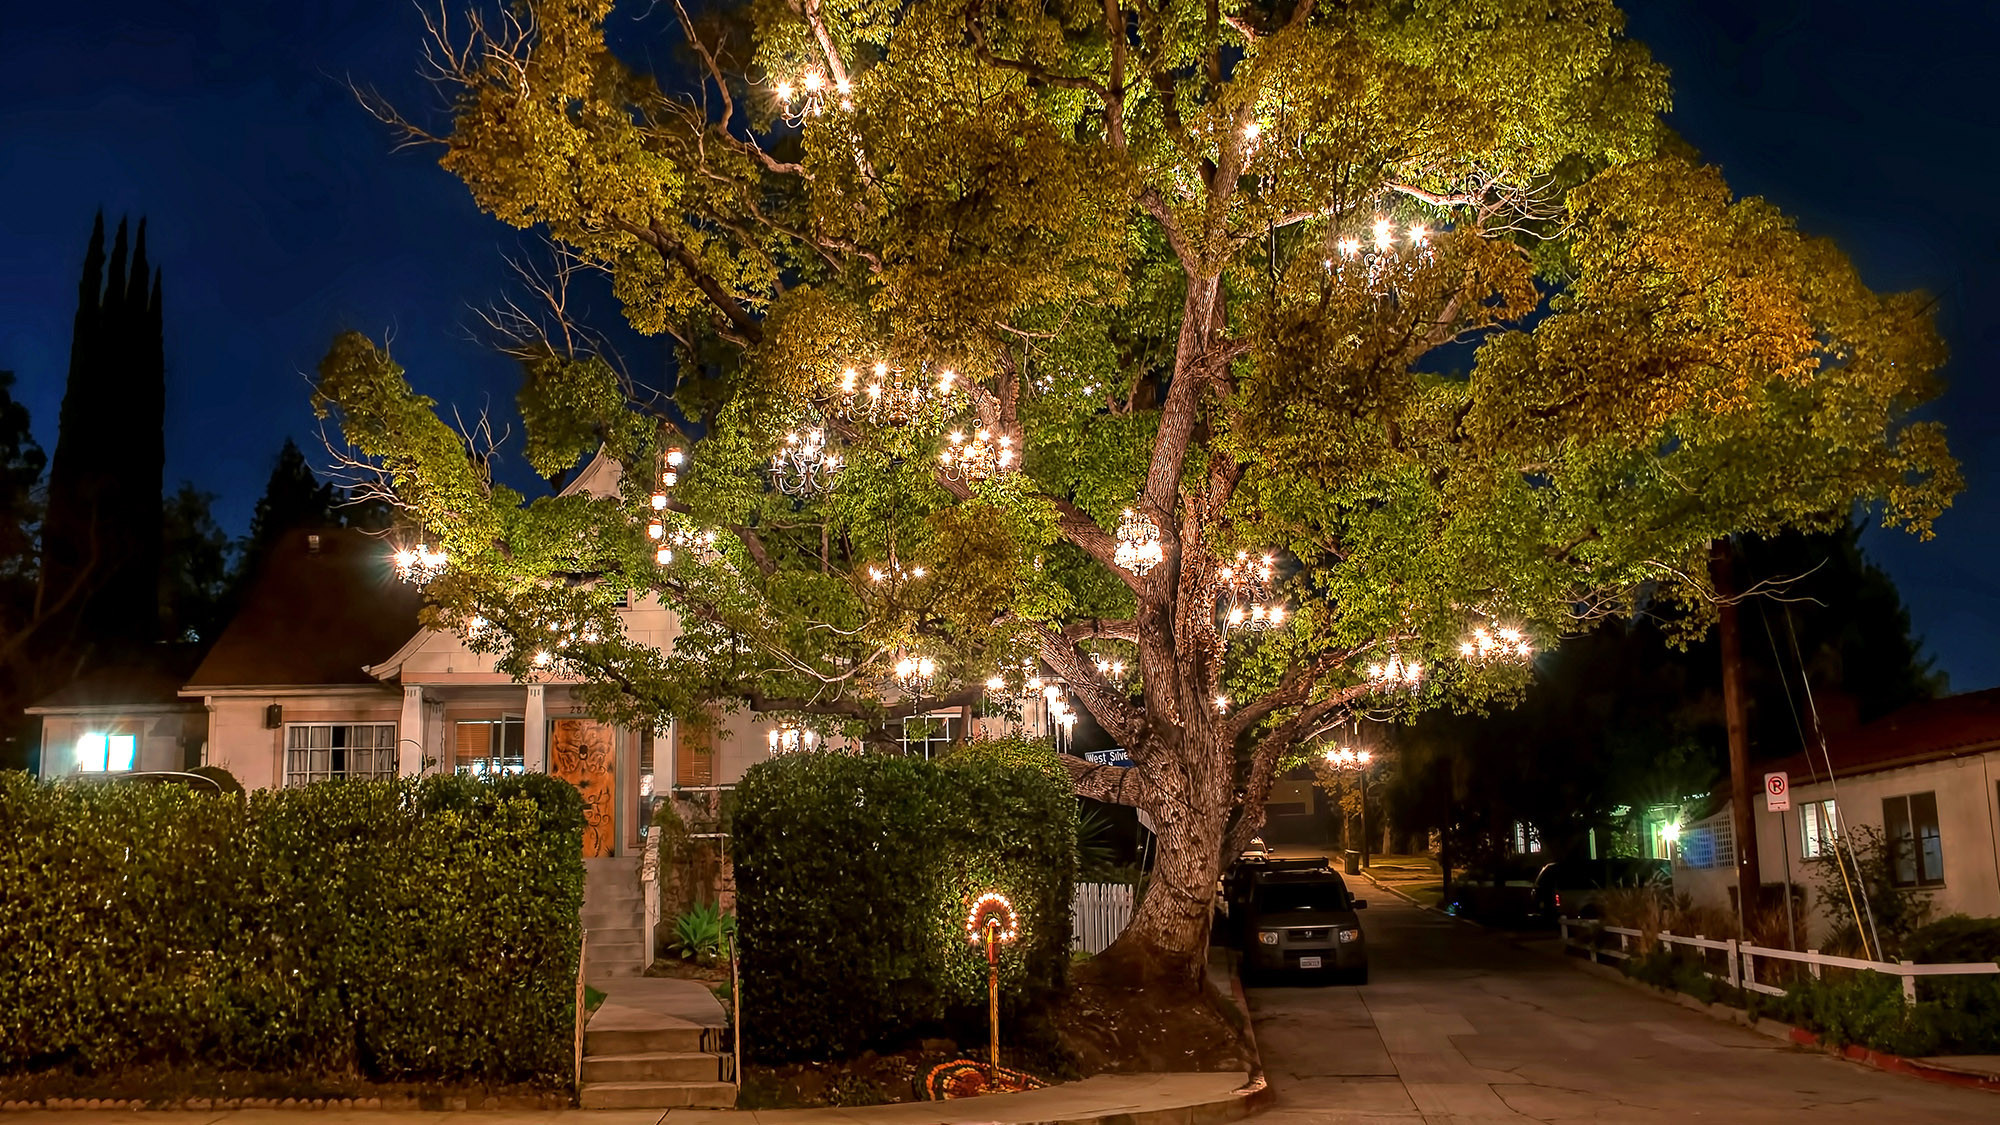 Extraordinary homes welcome you for a brief encounter - LA Times